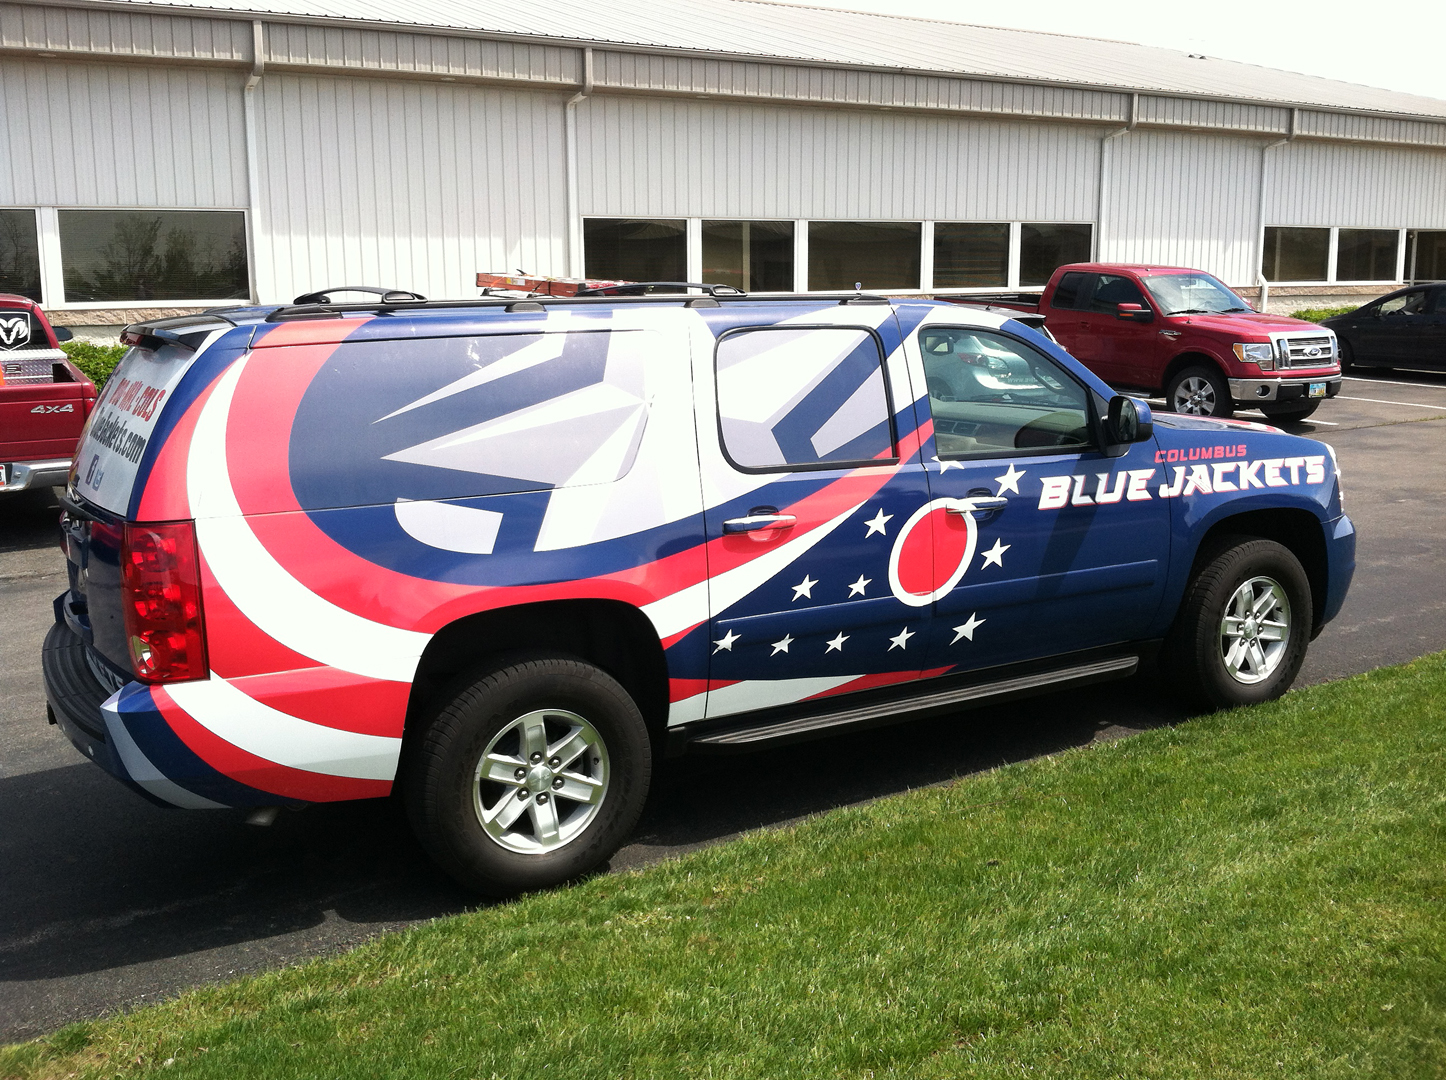 Blue Jackets tahoe